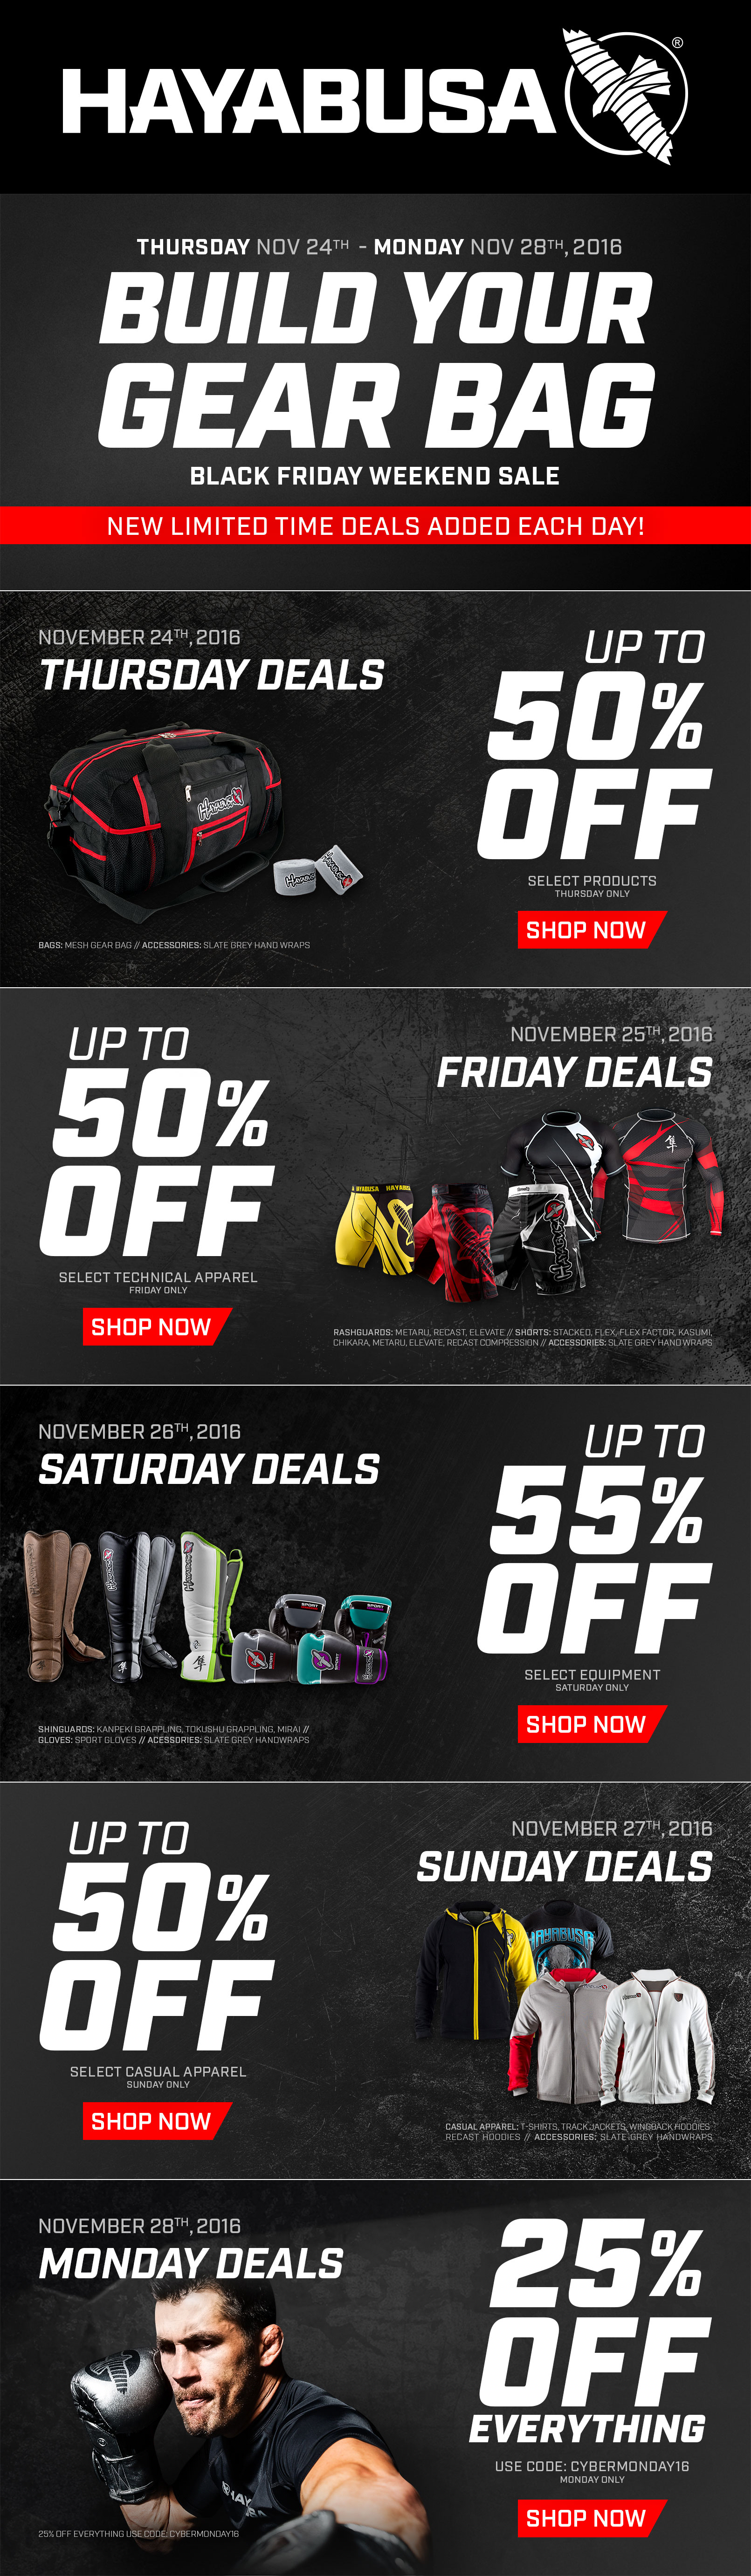 Black Friday - Newsletter